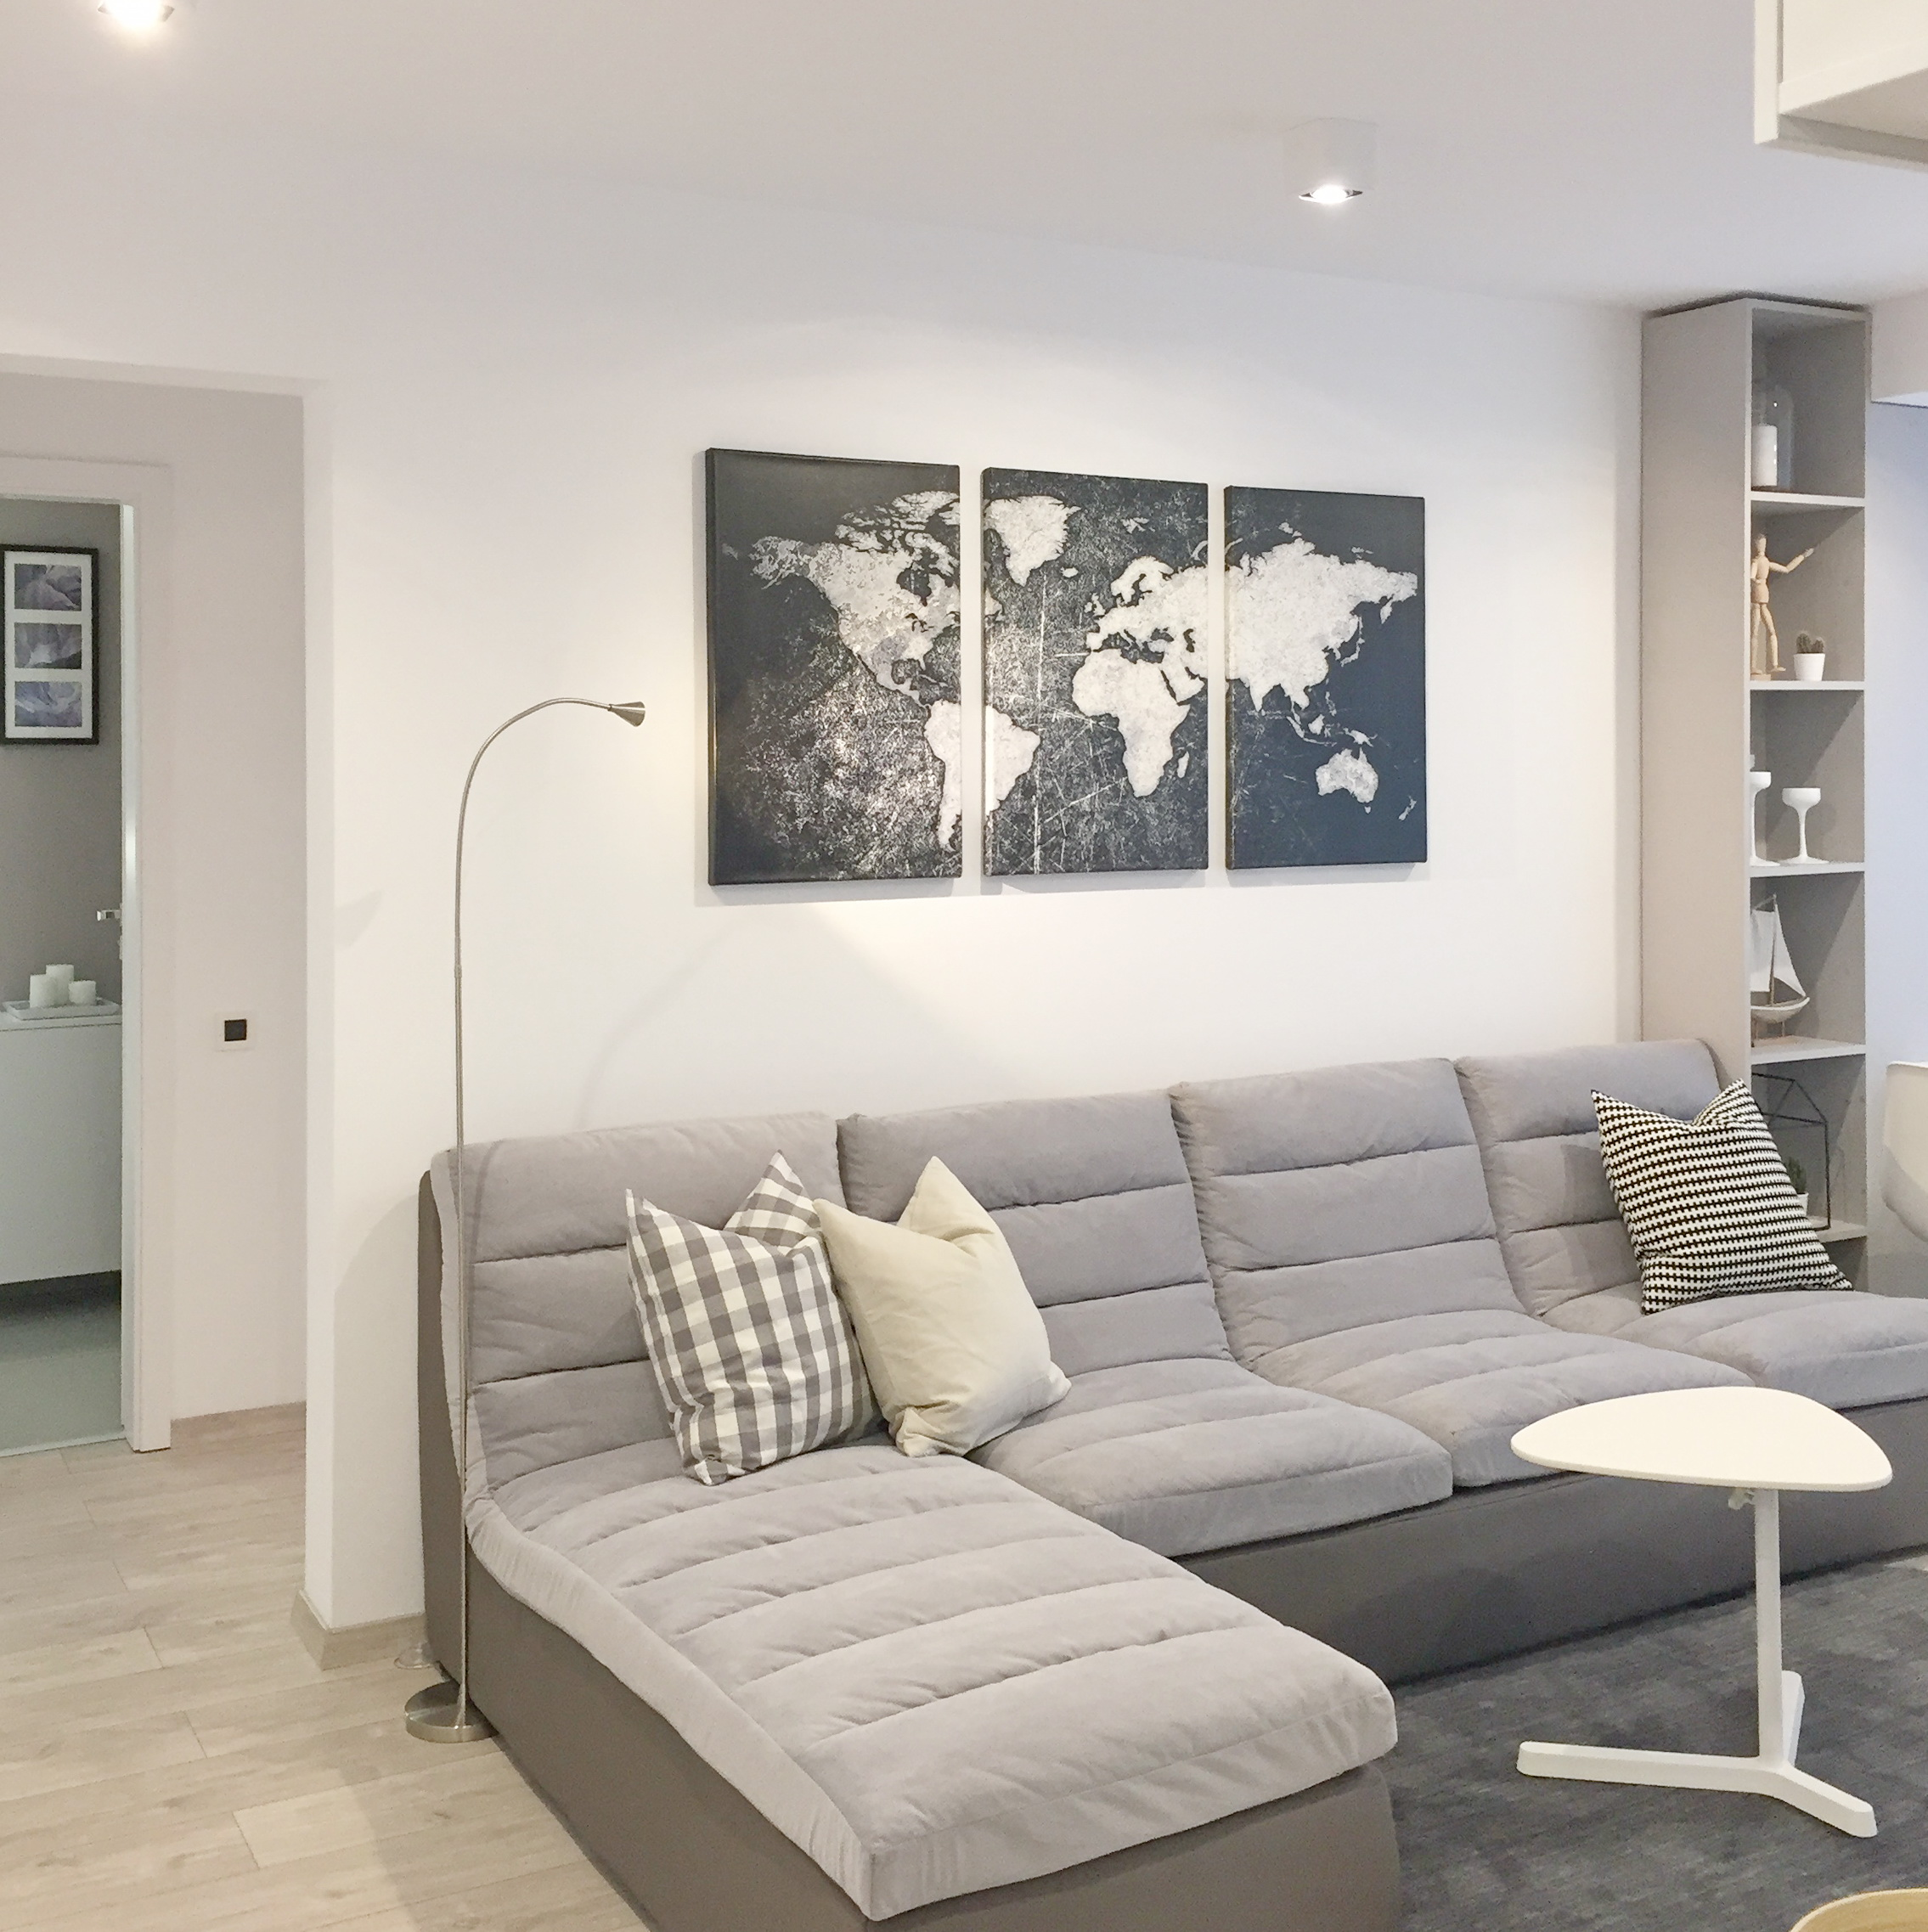 simona-ungurean-homestyling-design-interior-apartament-black-and-white-10